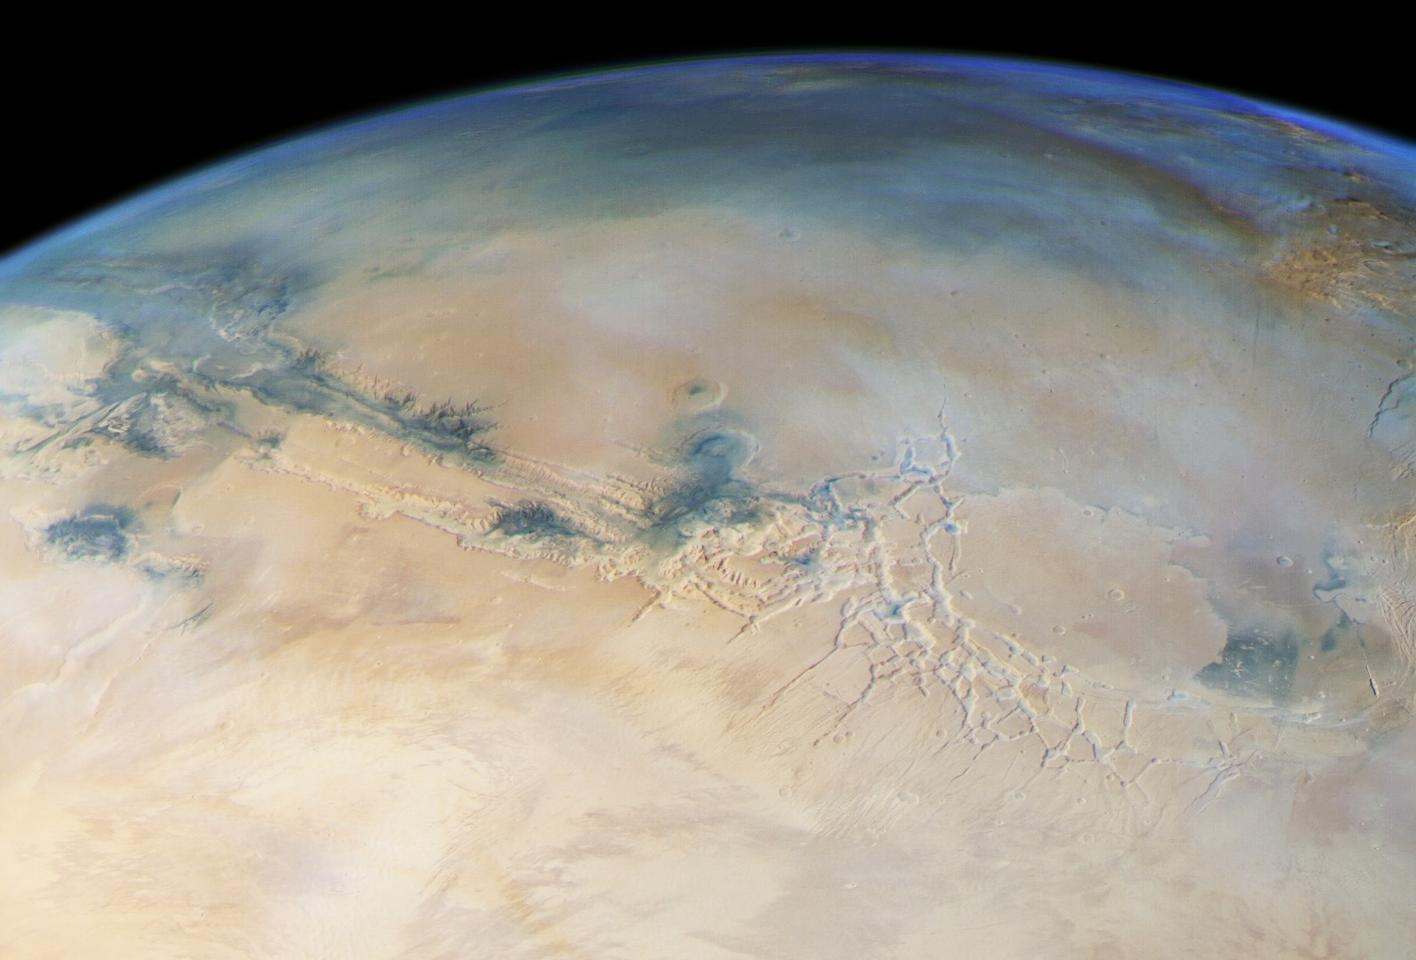 A huge liquid water lake has been found on Mars, stretching 20 km (12.4 mi) and buried beneath 1.5 km (0.9 mi) of ice at the Red Planet's south pole